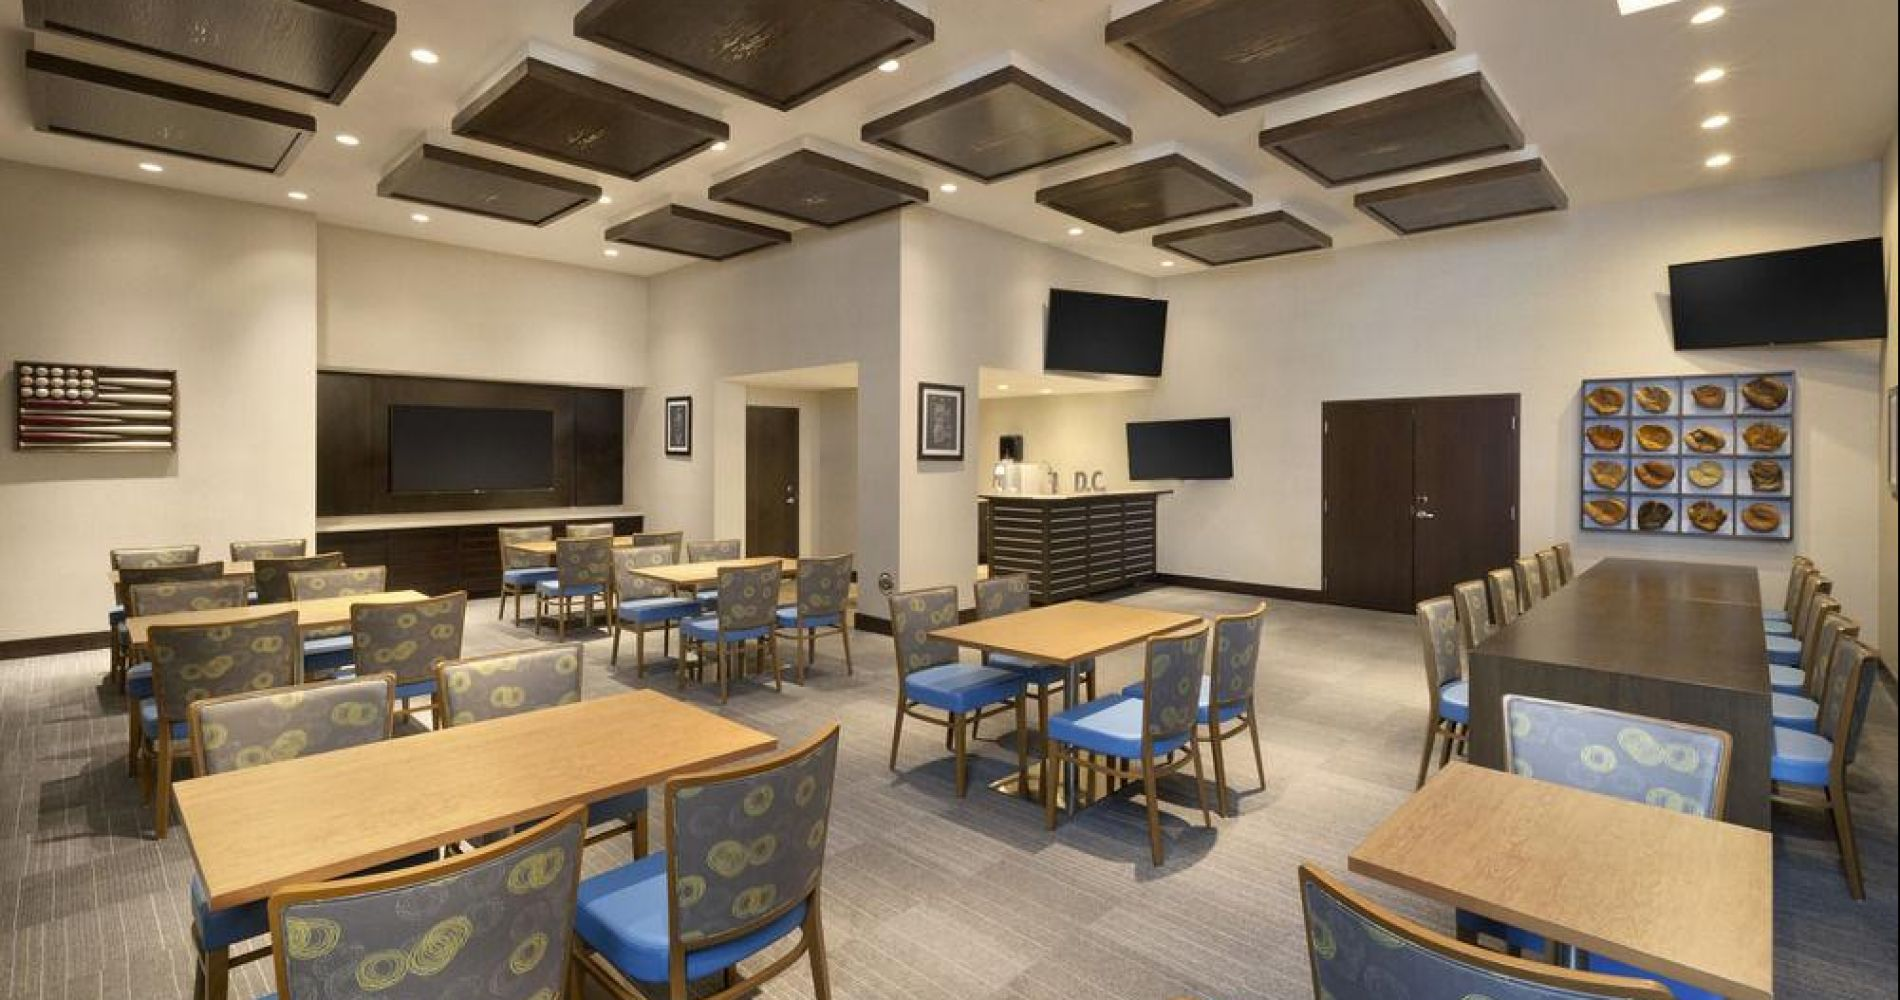 Hampton Inn & Suites Washington, D.C. - Navy Yard